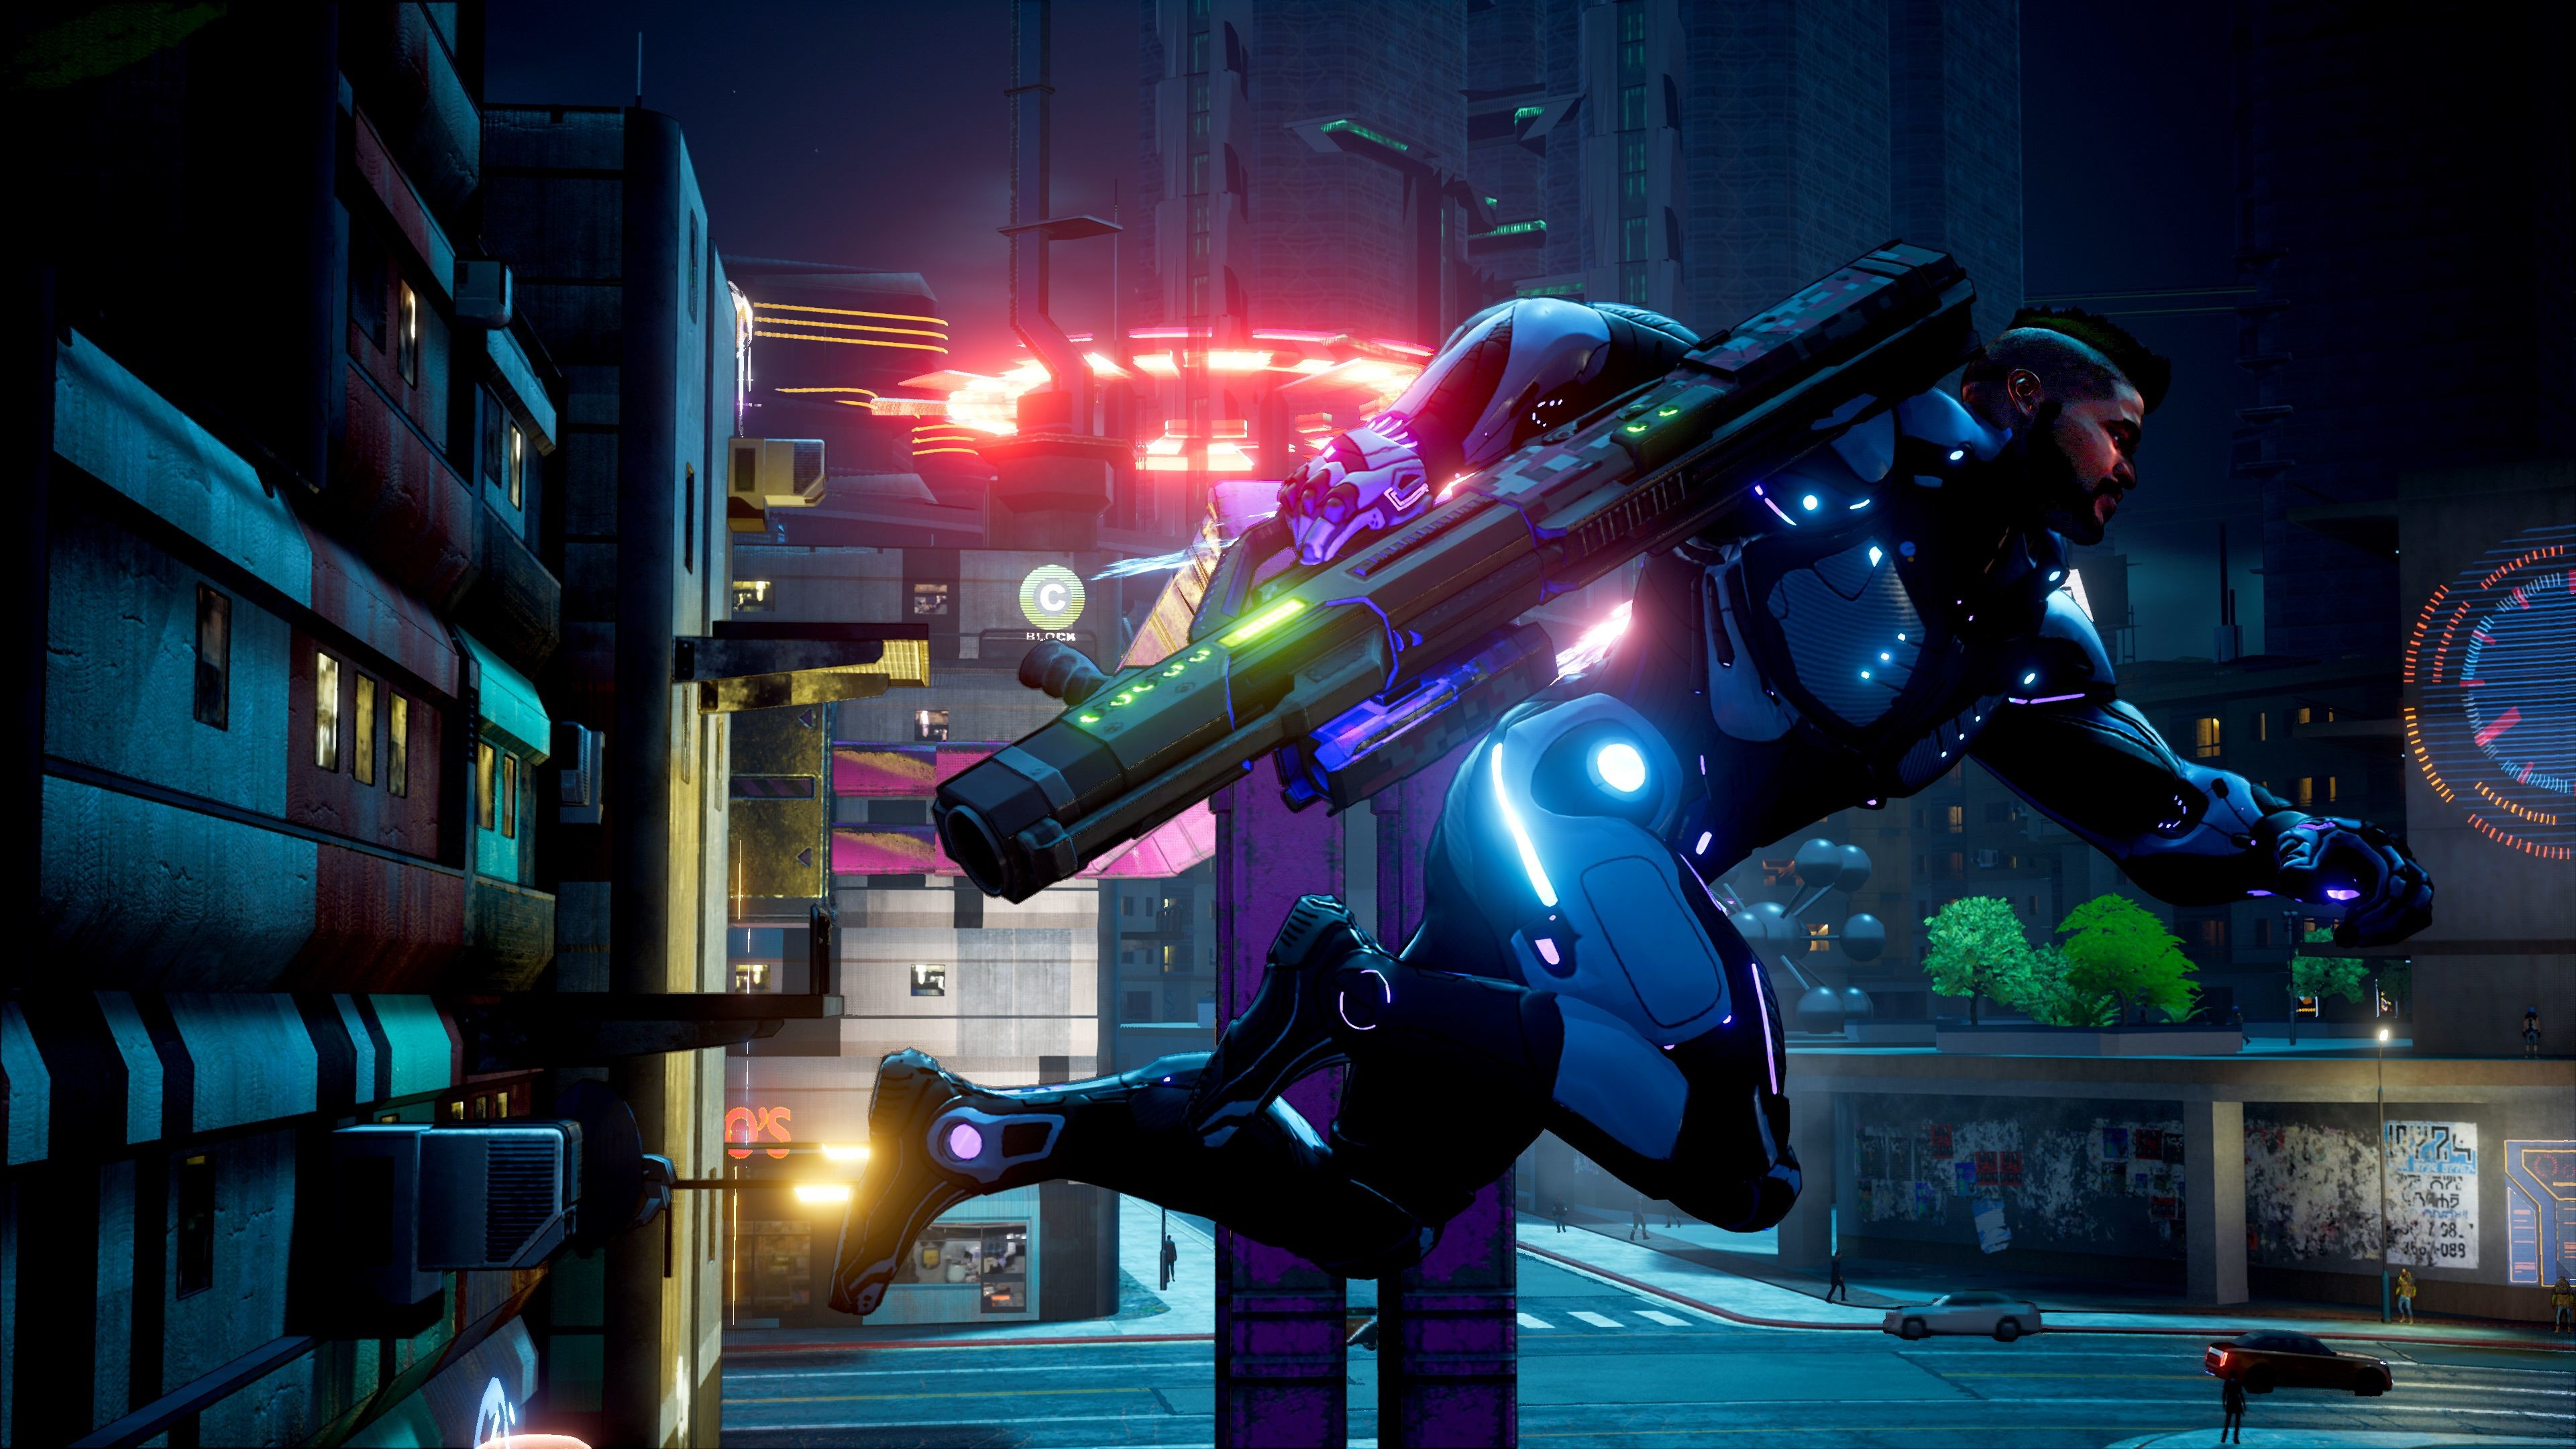 Microsoft confirms Crackdown 3 delay, now due in February 2019